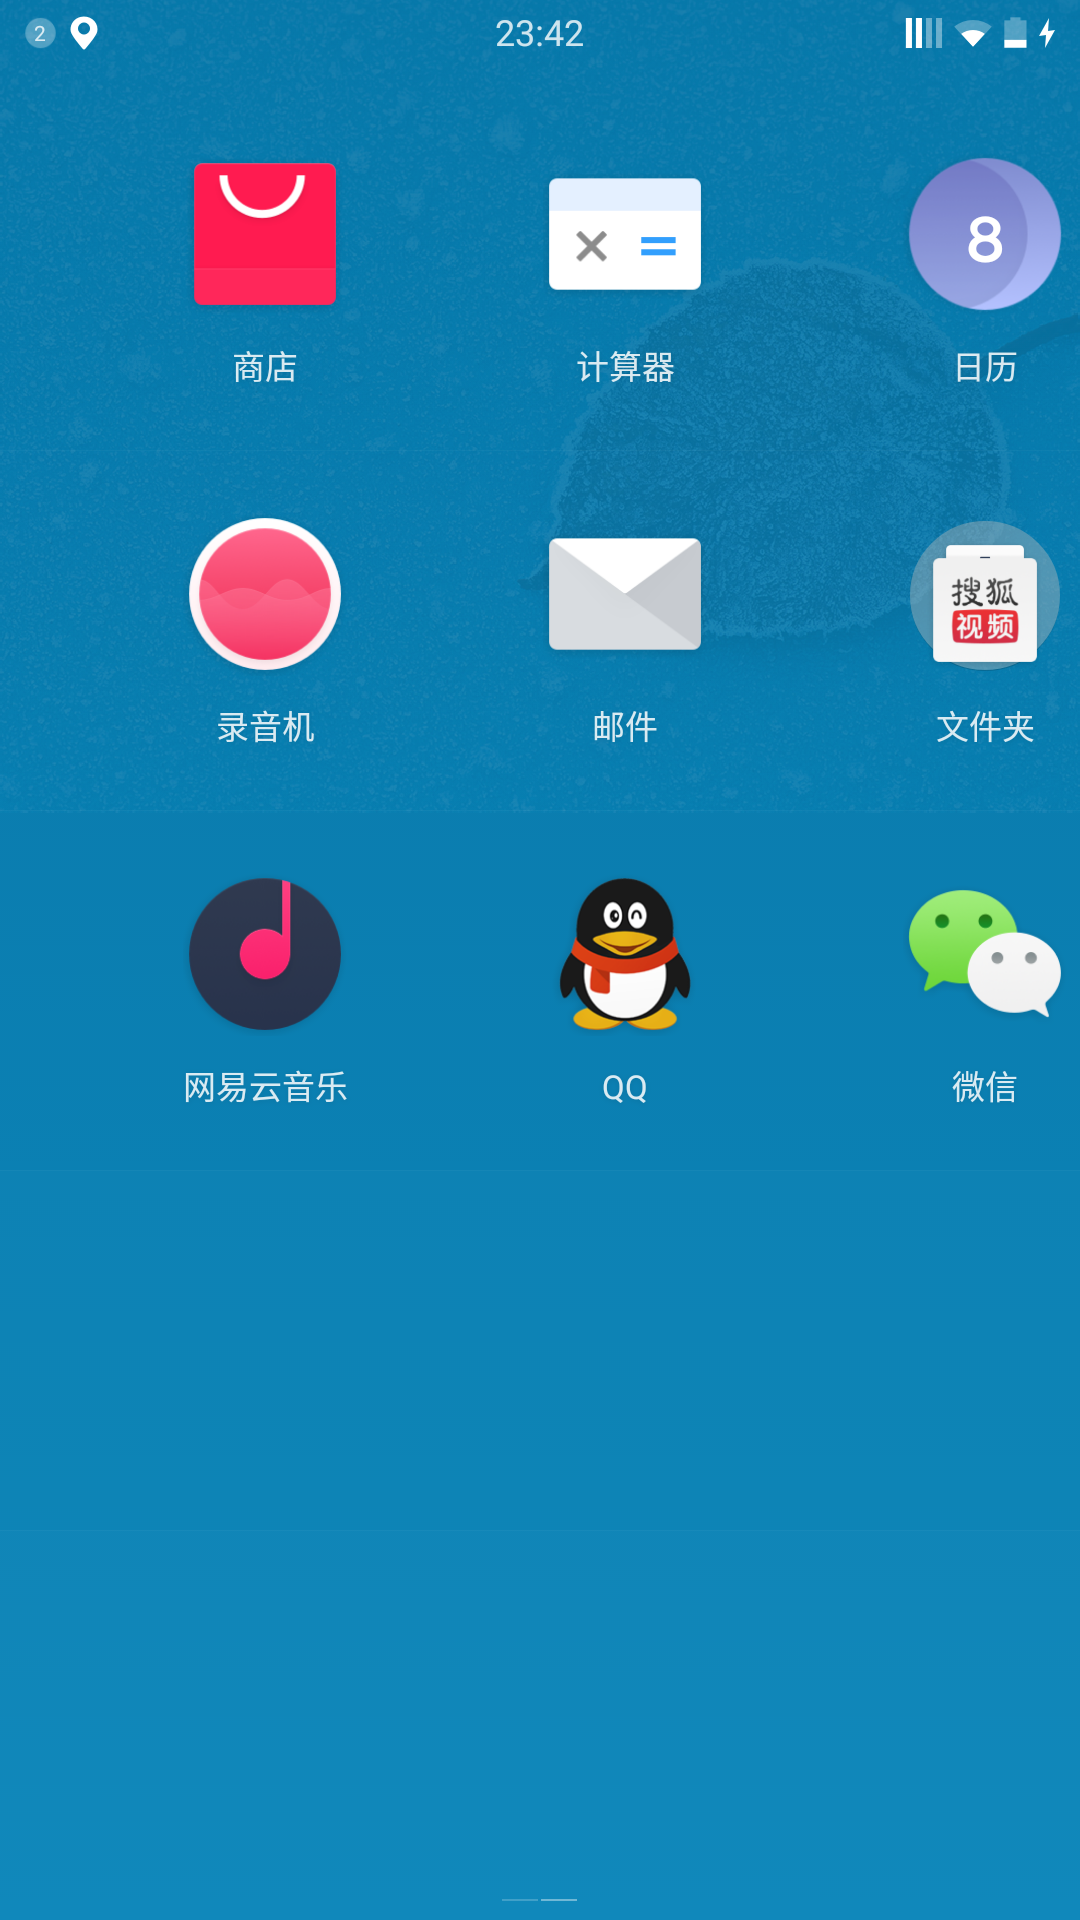 Screenshot_2015-07-08-23-42-05.png